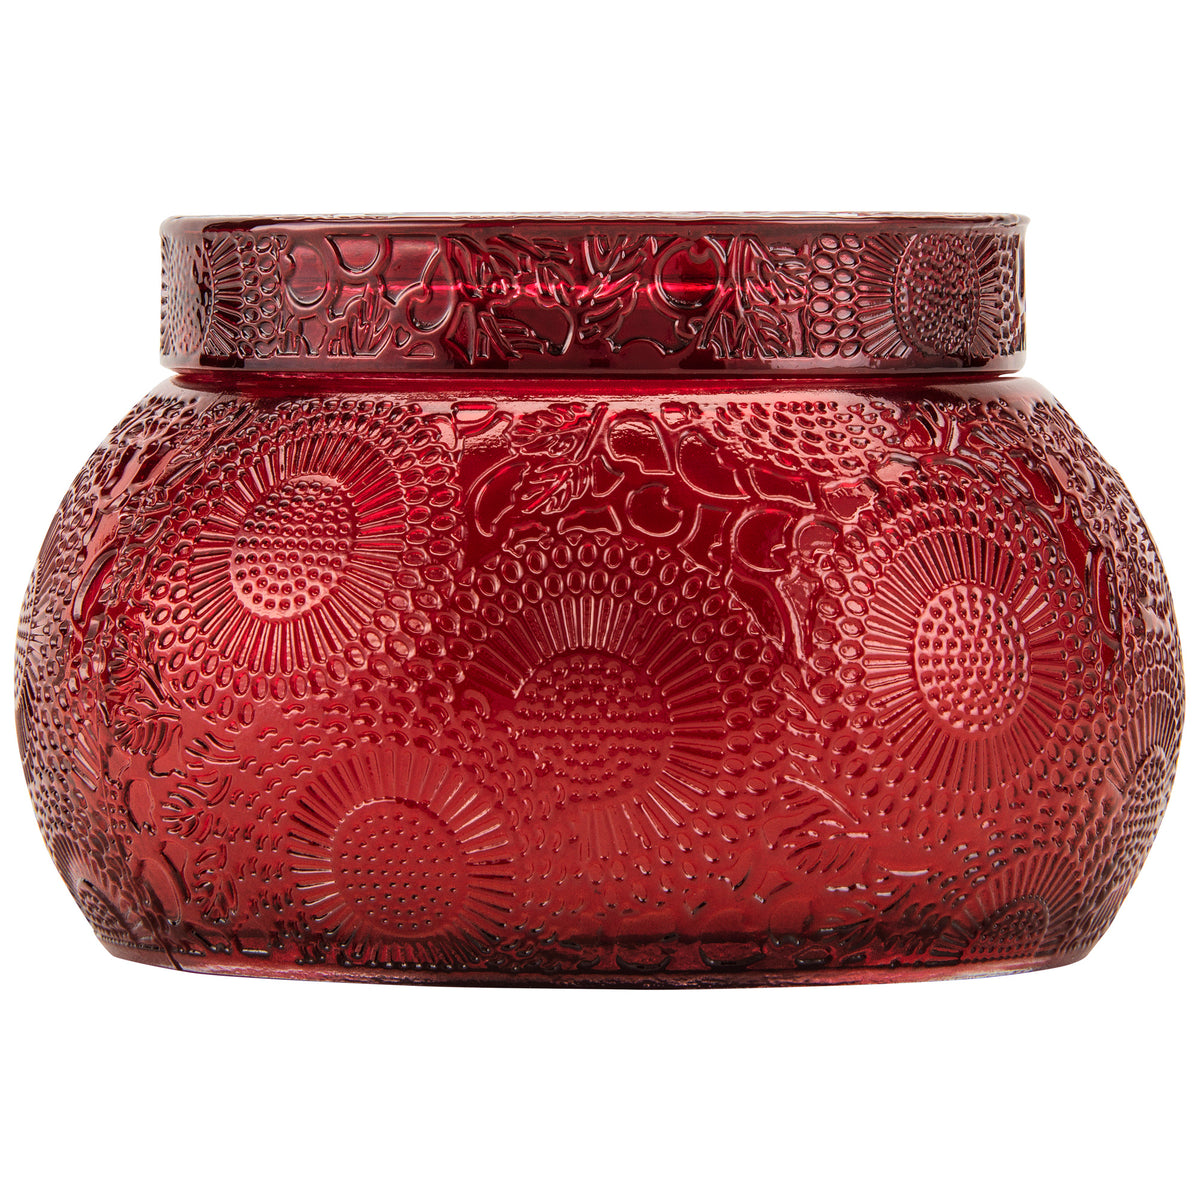 Goji Tarocco Orange - Chawan Bowl Candle - 2